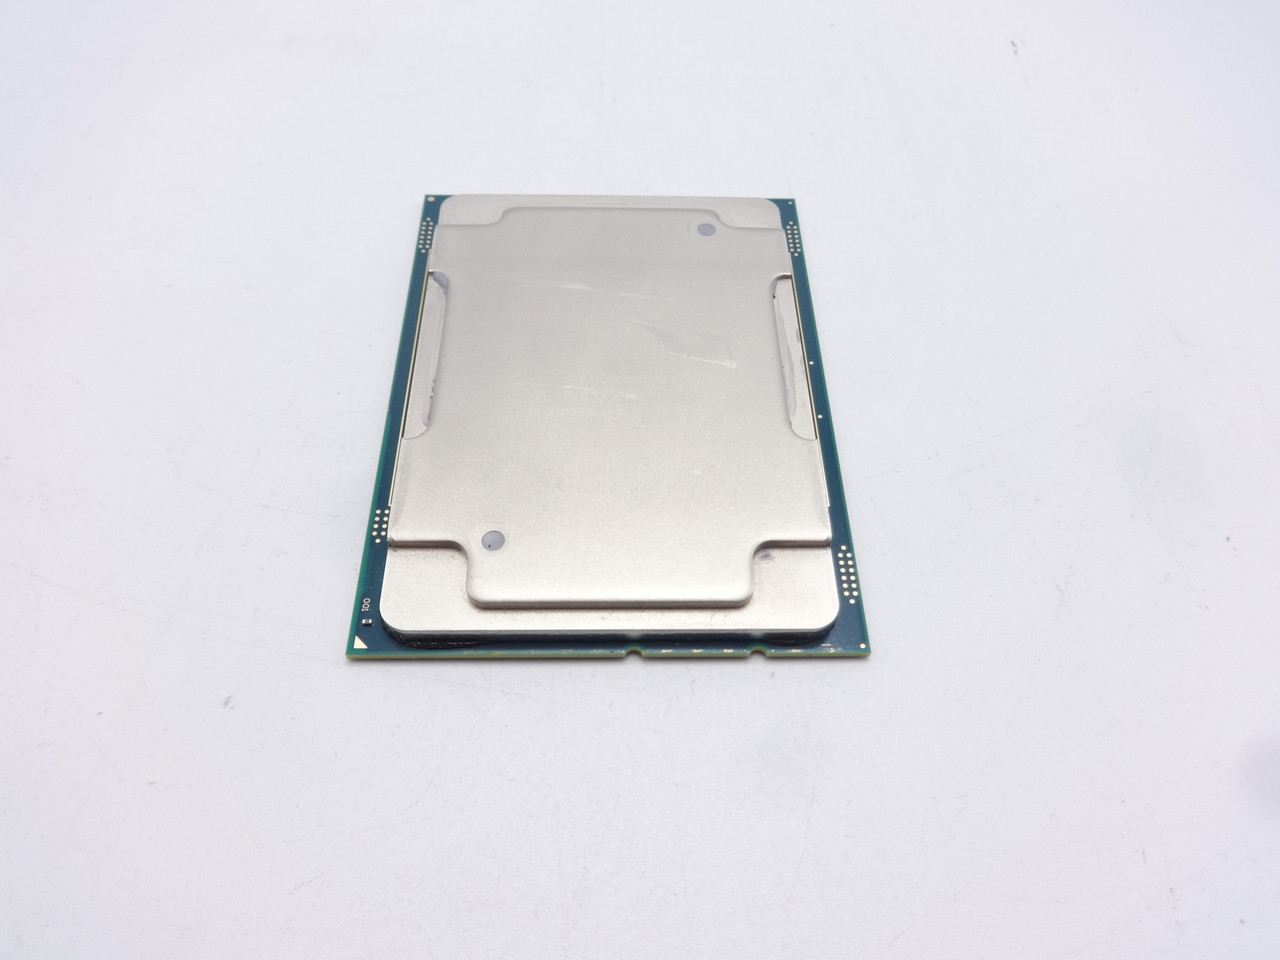 Intel SR3J4 GOLD 6128 XEON 6C 3.4GHZ/19.25MB PROCESSOR